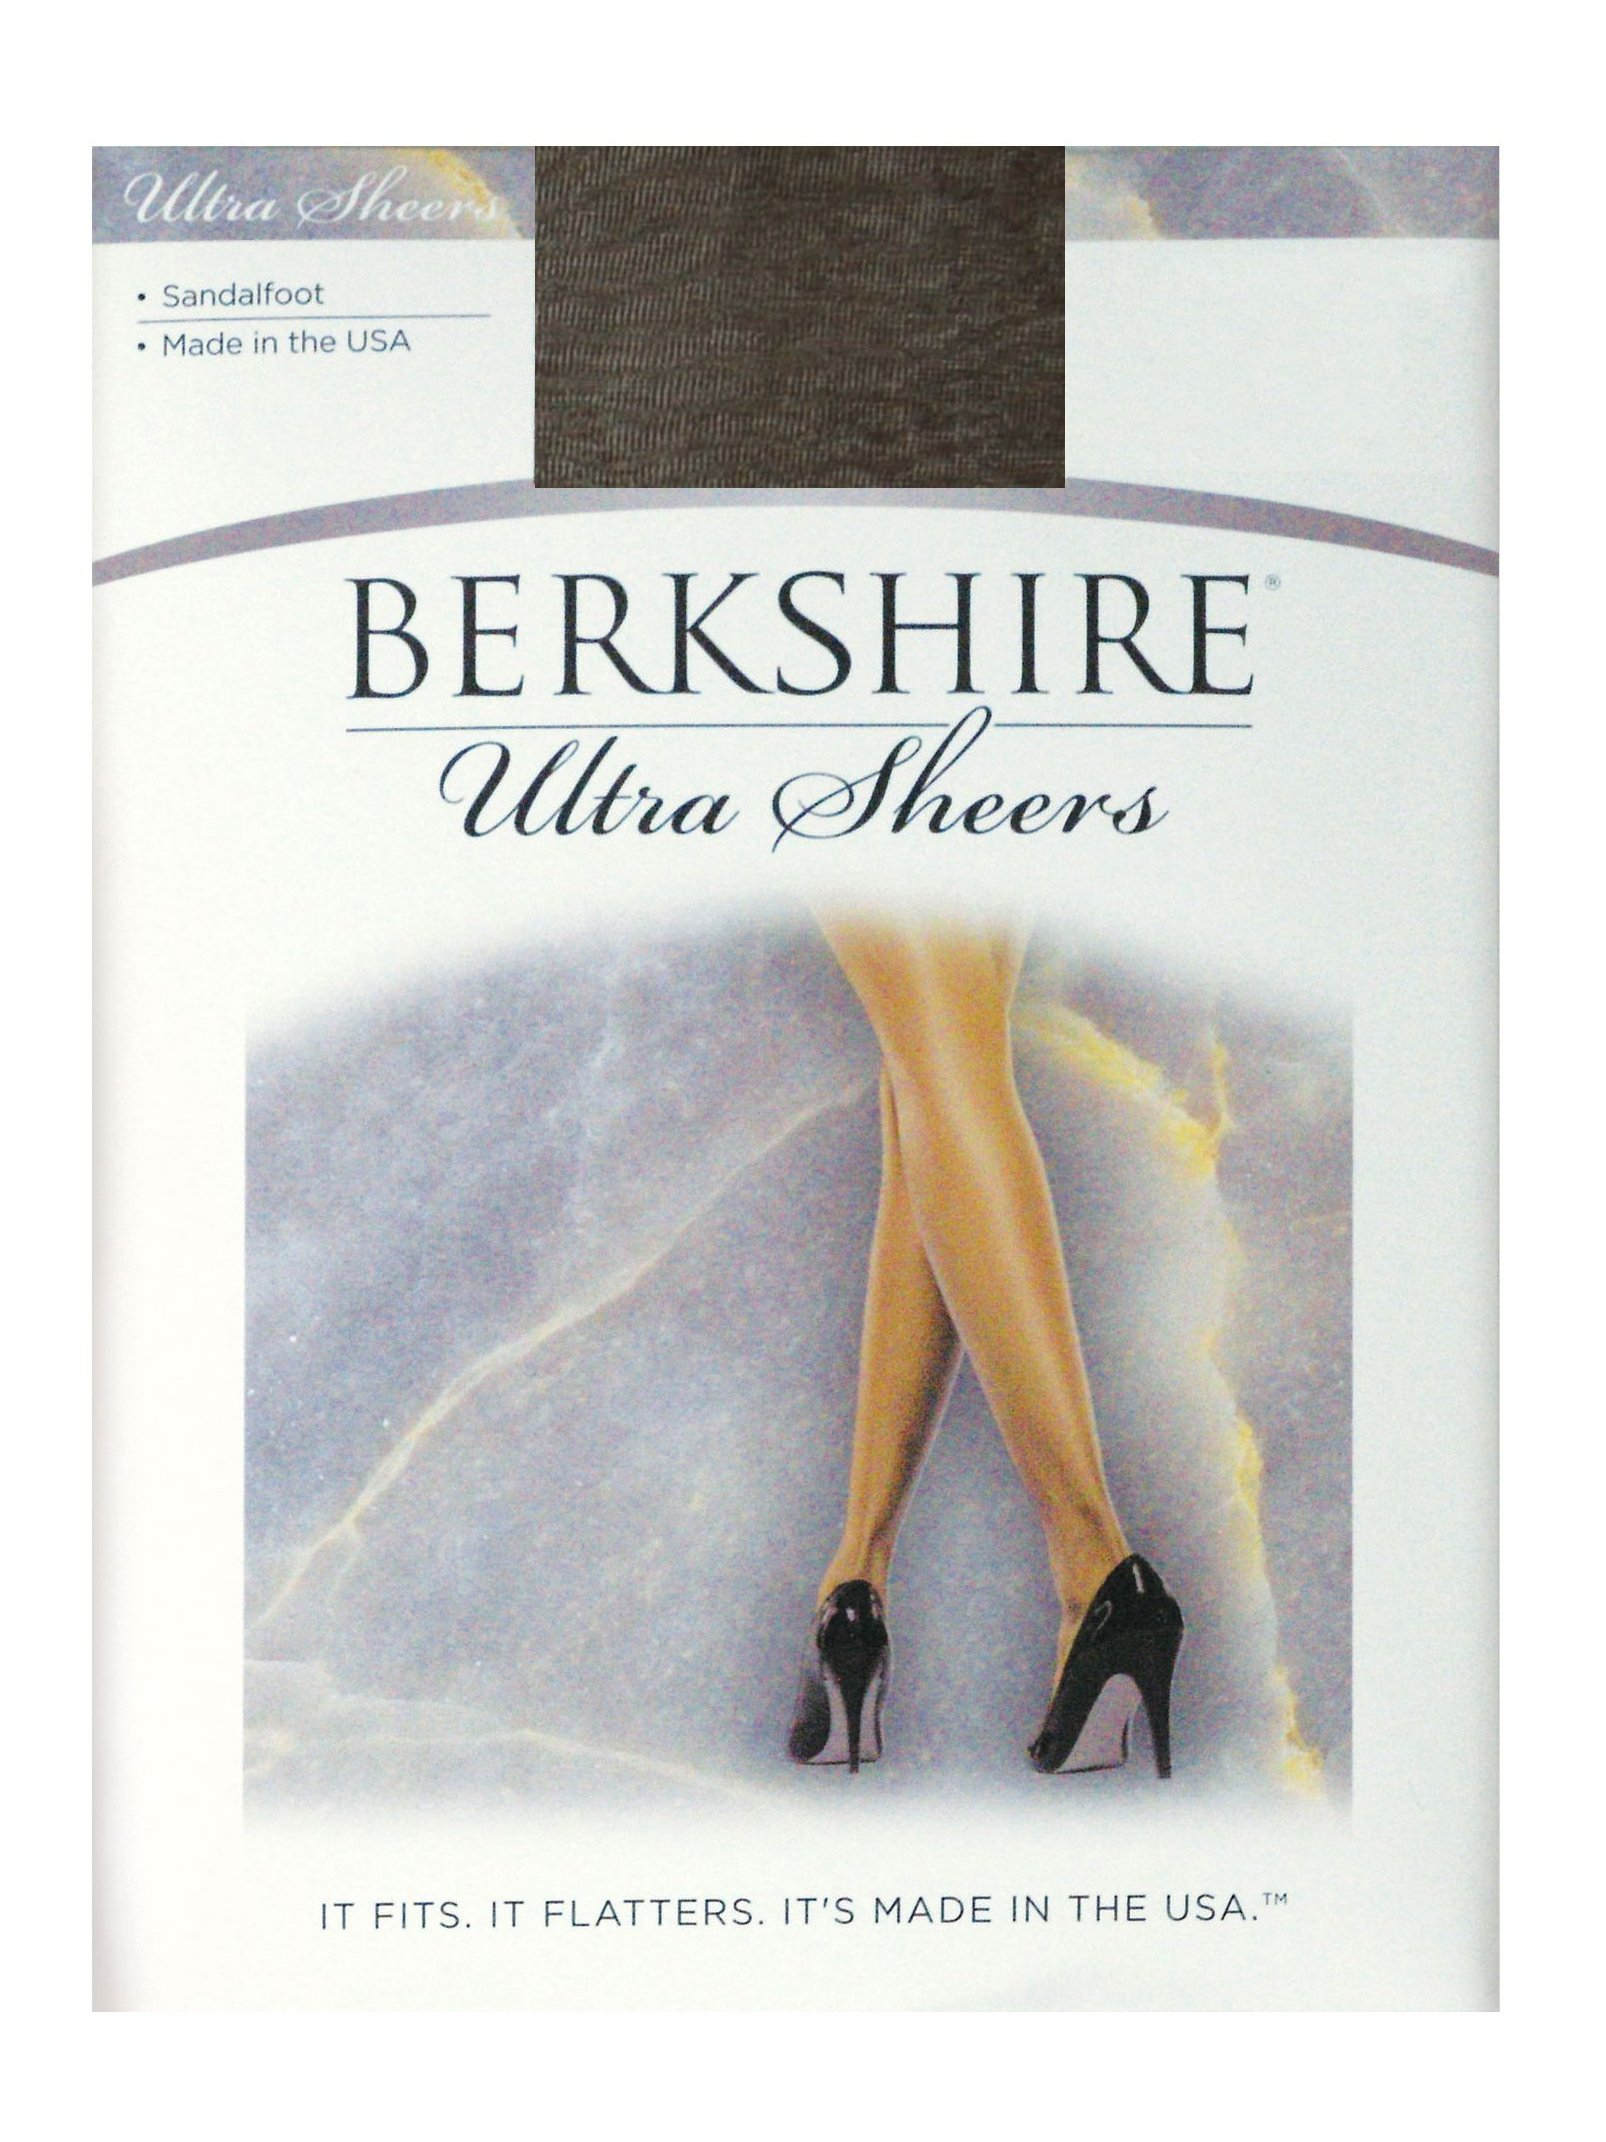 Berkshire Women's Ultra Sheer Non-Control Top Pantyhose - Sandalfoot, Off Black, 2+